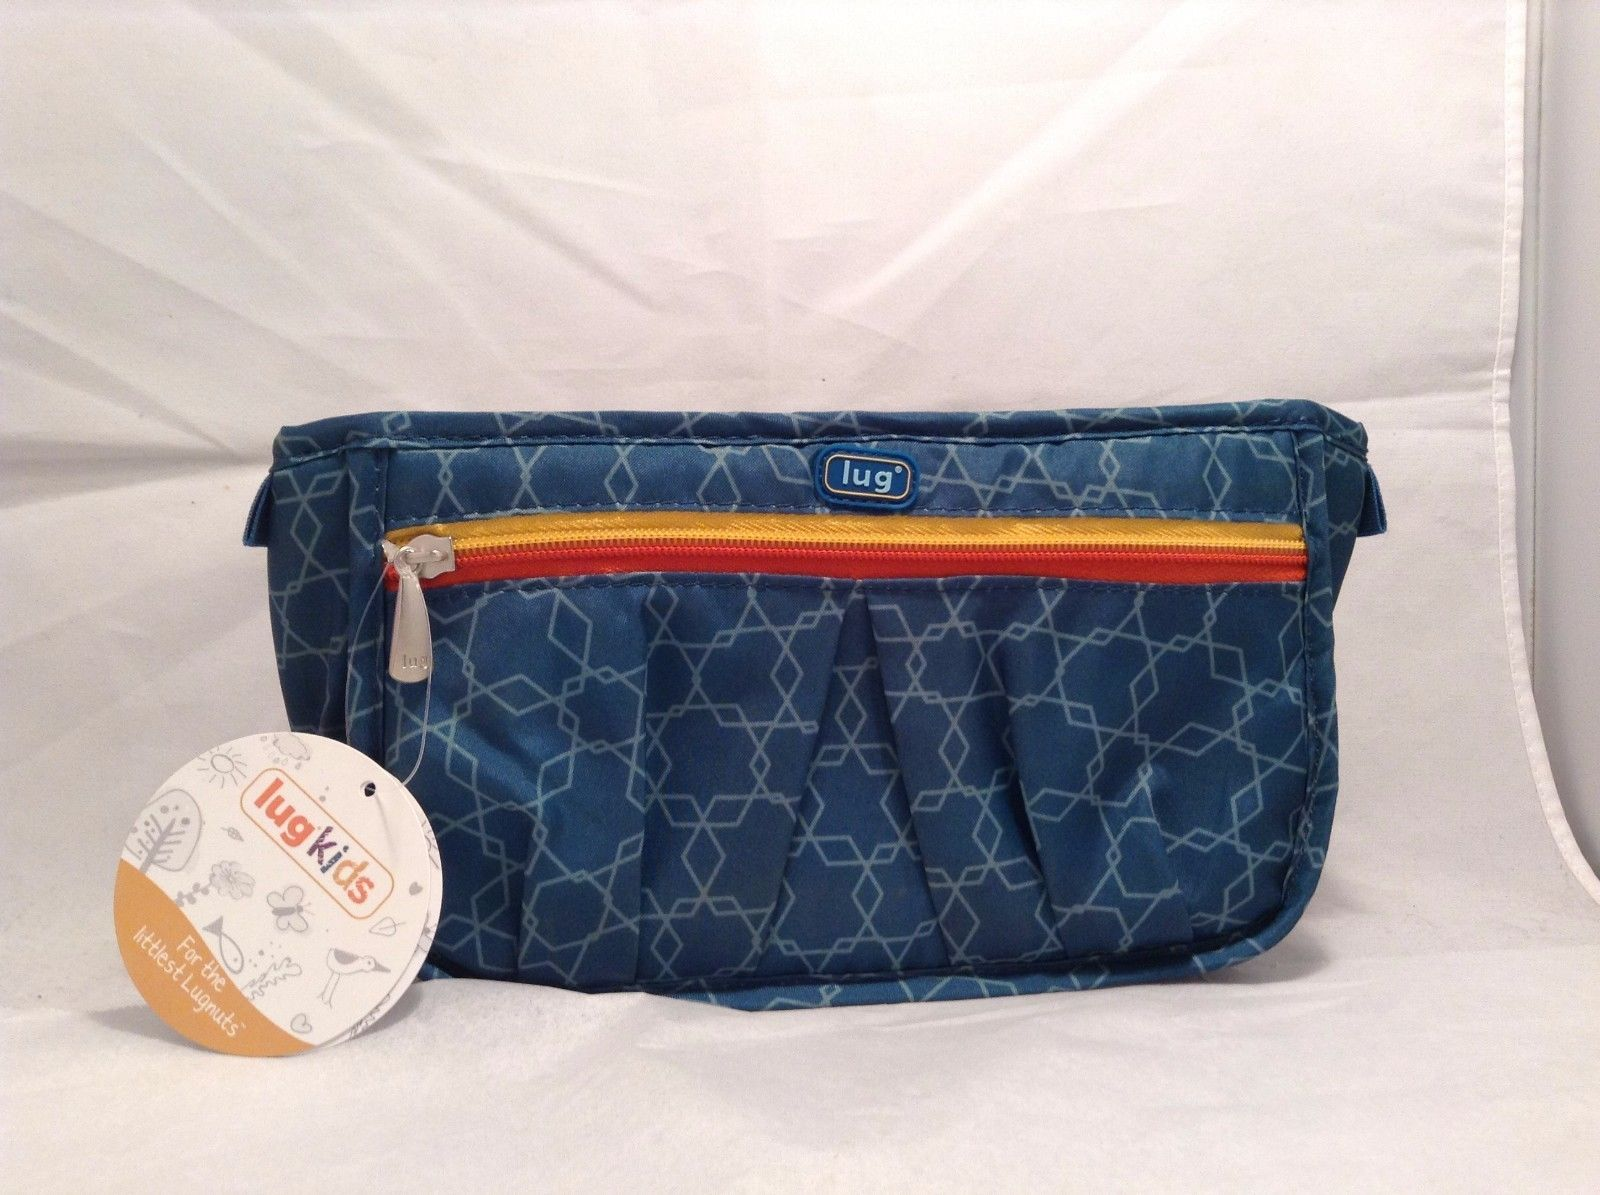 New With Tags NWT Lug Kids Ocean Blue Toiletry Pouch Geometric Design